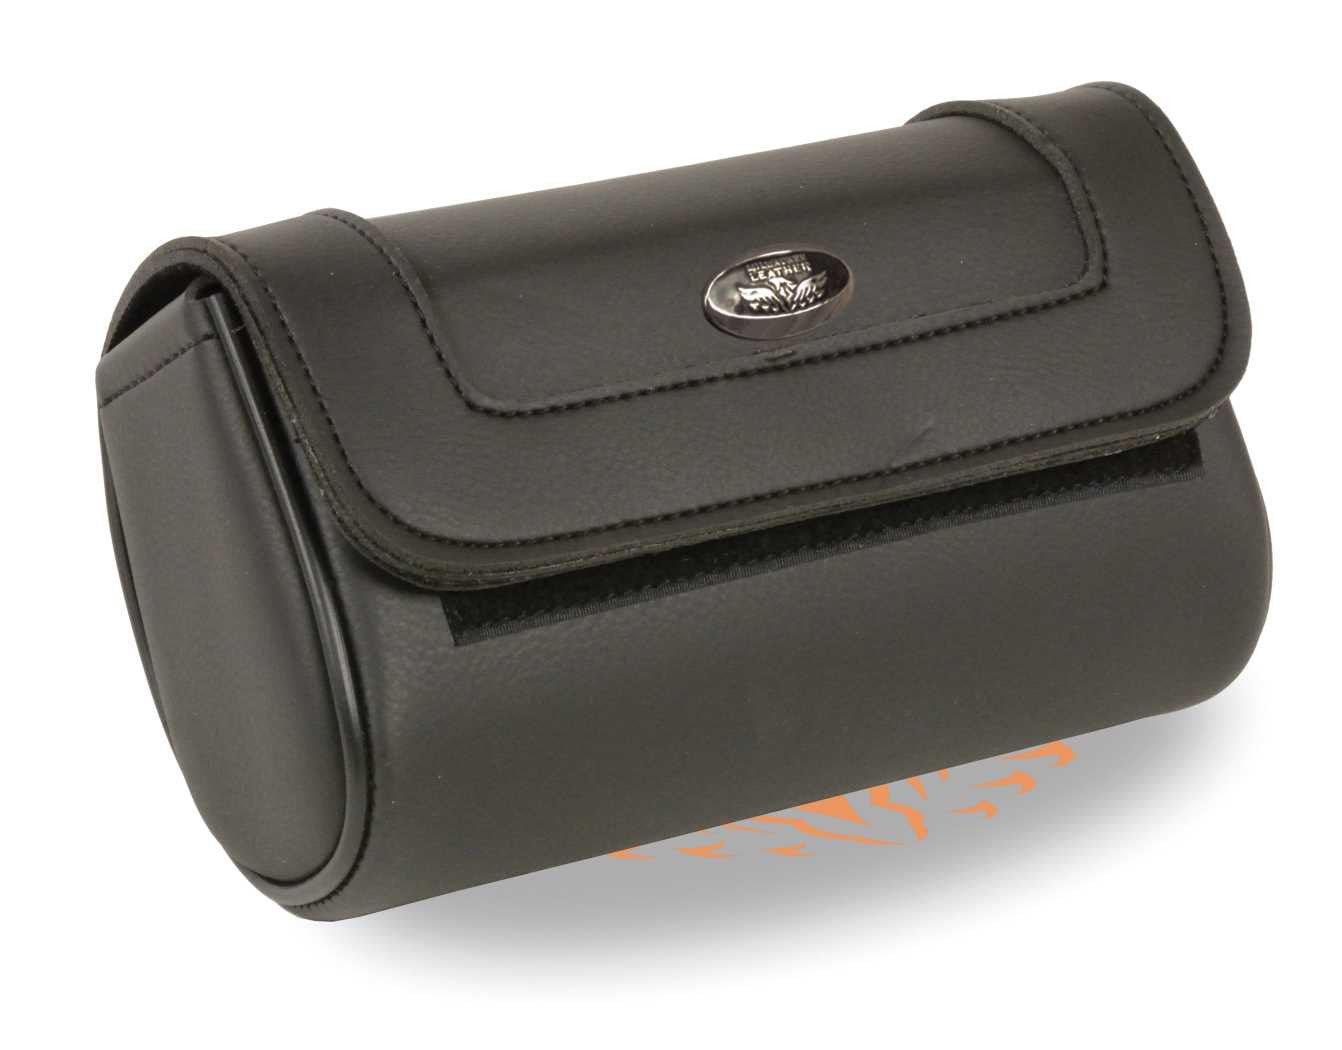 PVC SMALL TOOL BAG W/ VELCRO CLOSURE